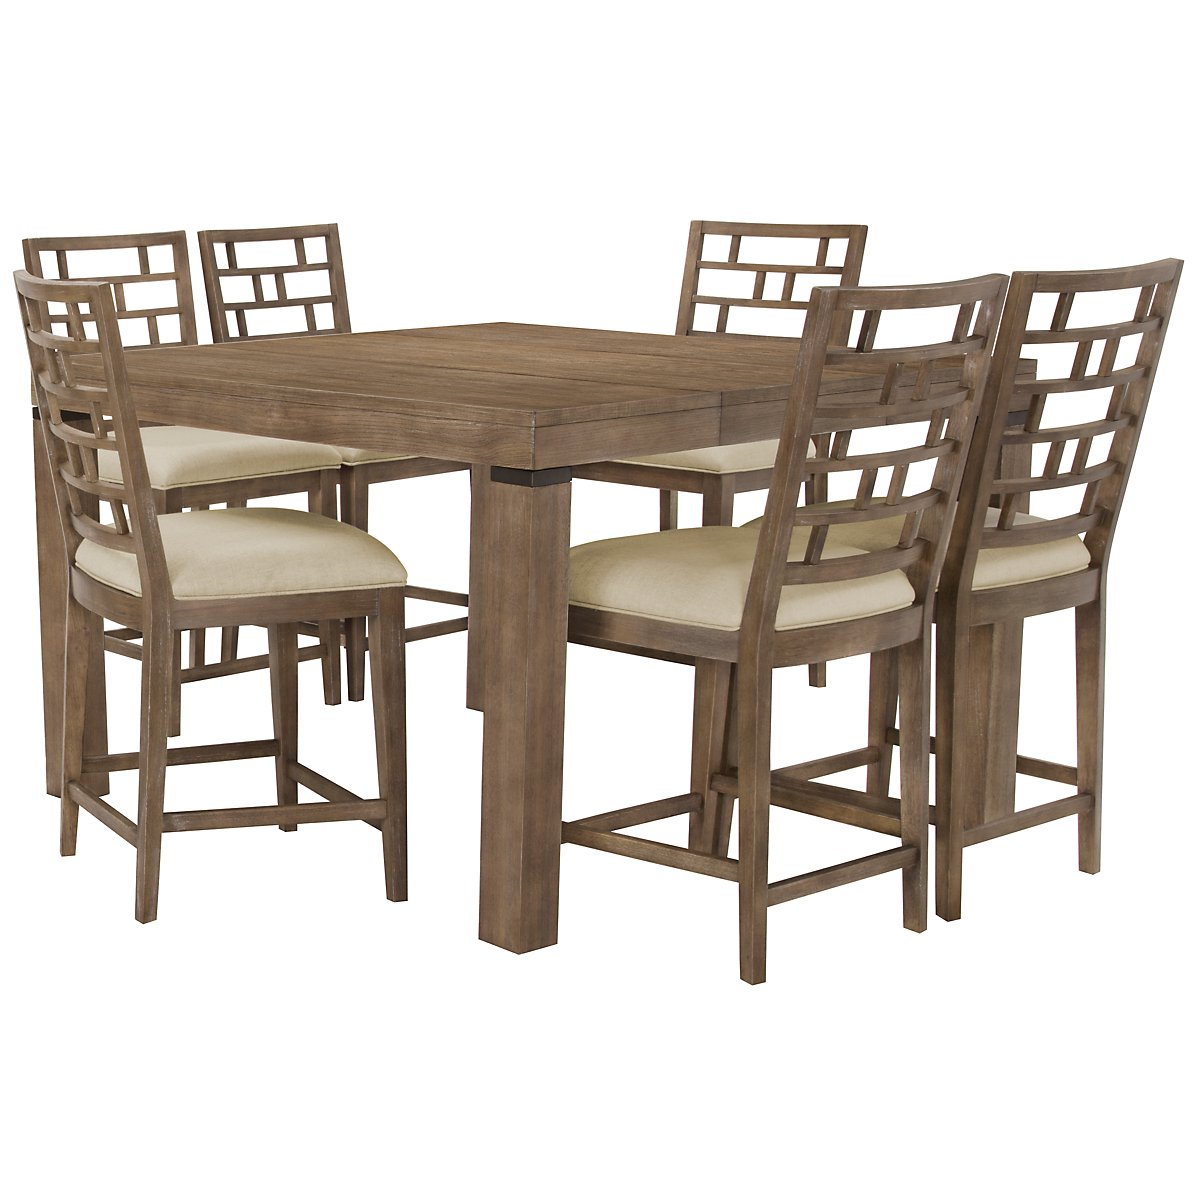 Mirabelle Light Tone High Table & 4 Wood Barstools